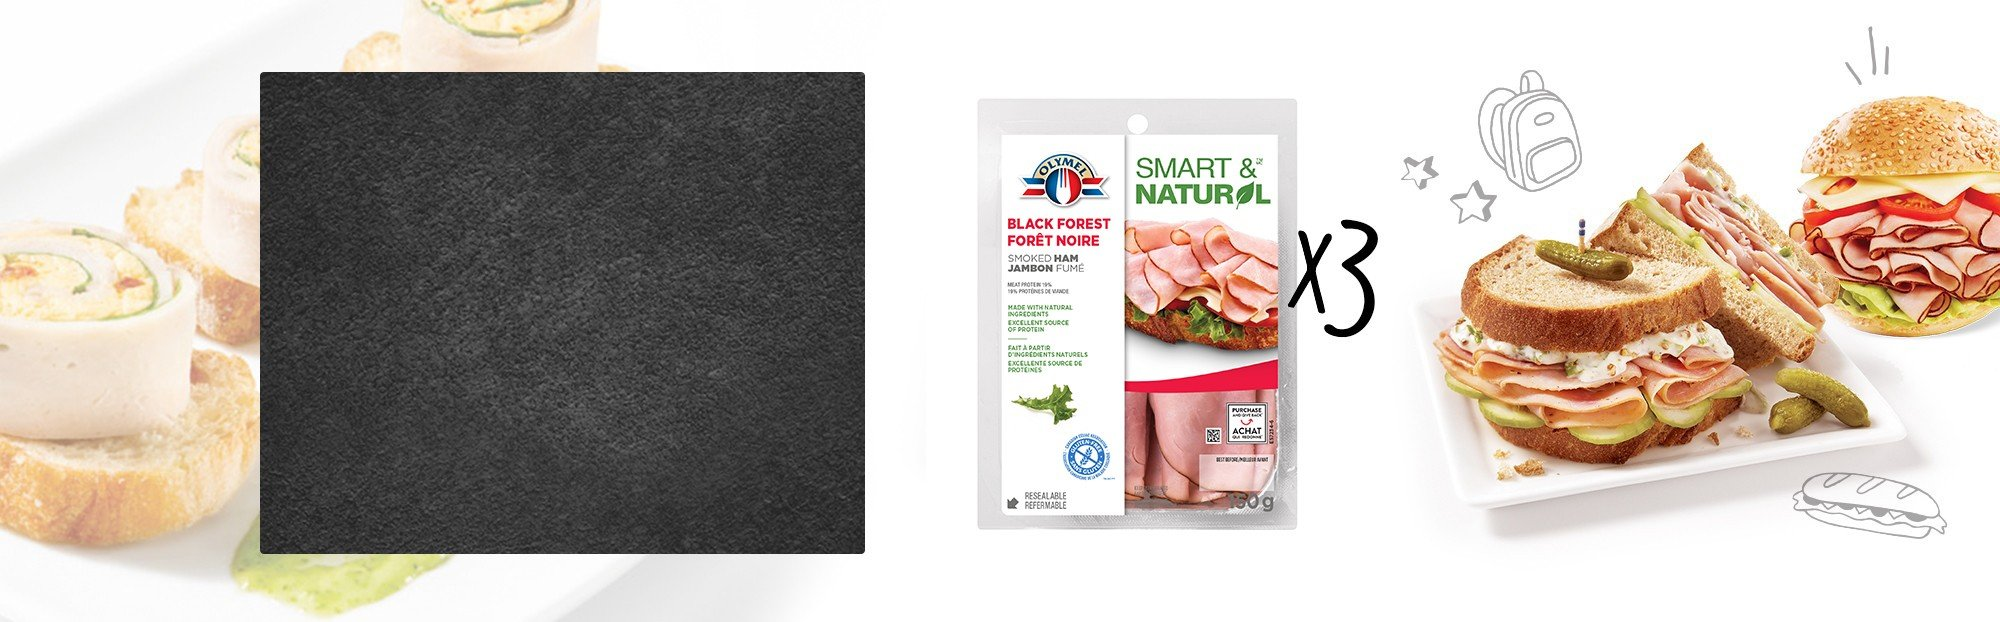 Shaved Black Forest Smoked Ham - Tri pack